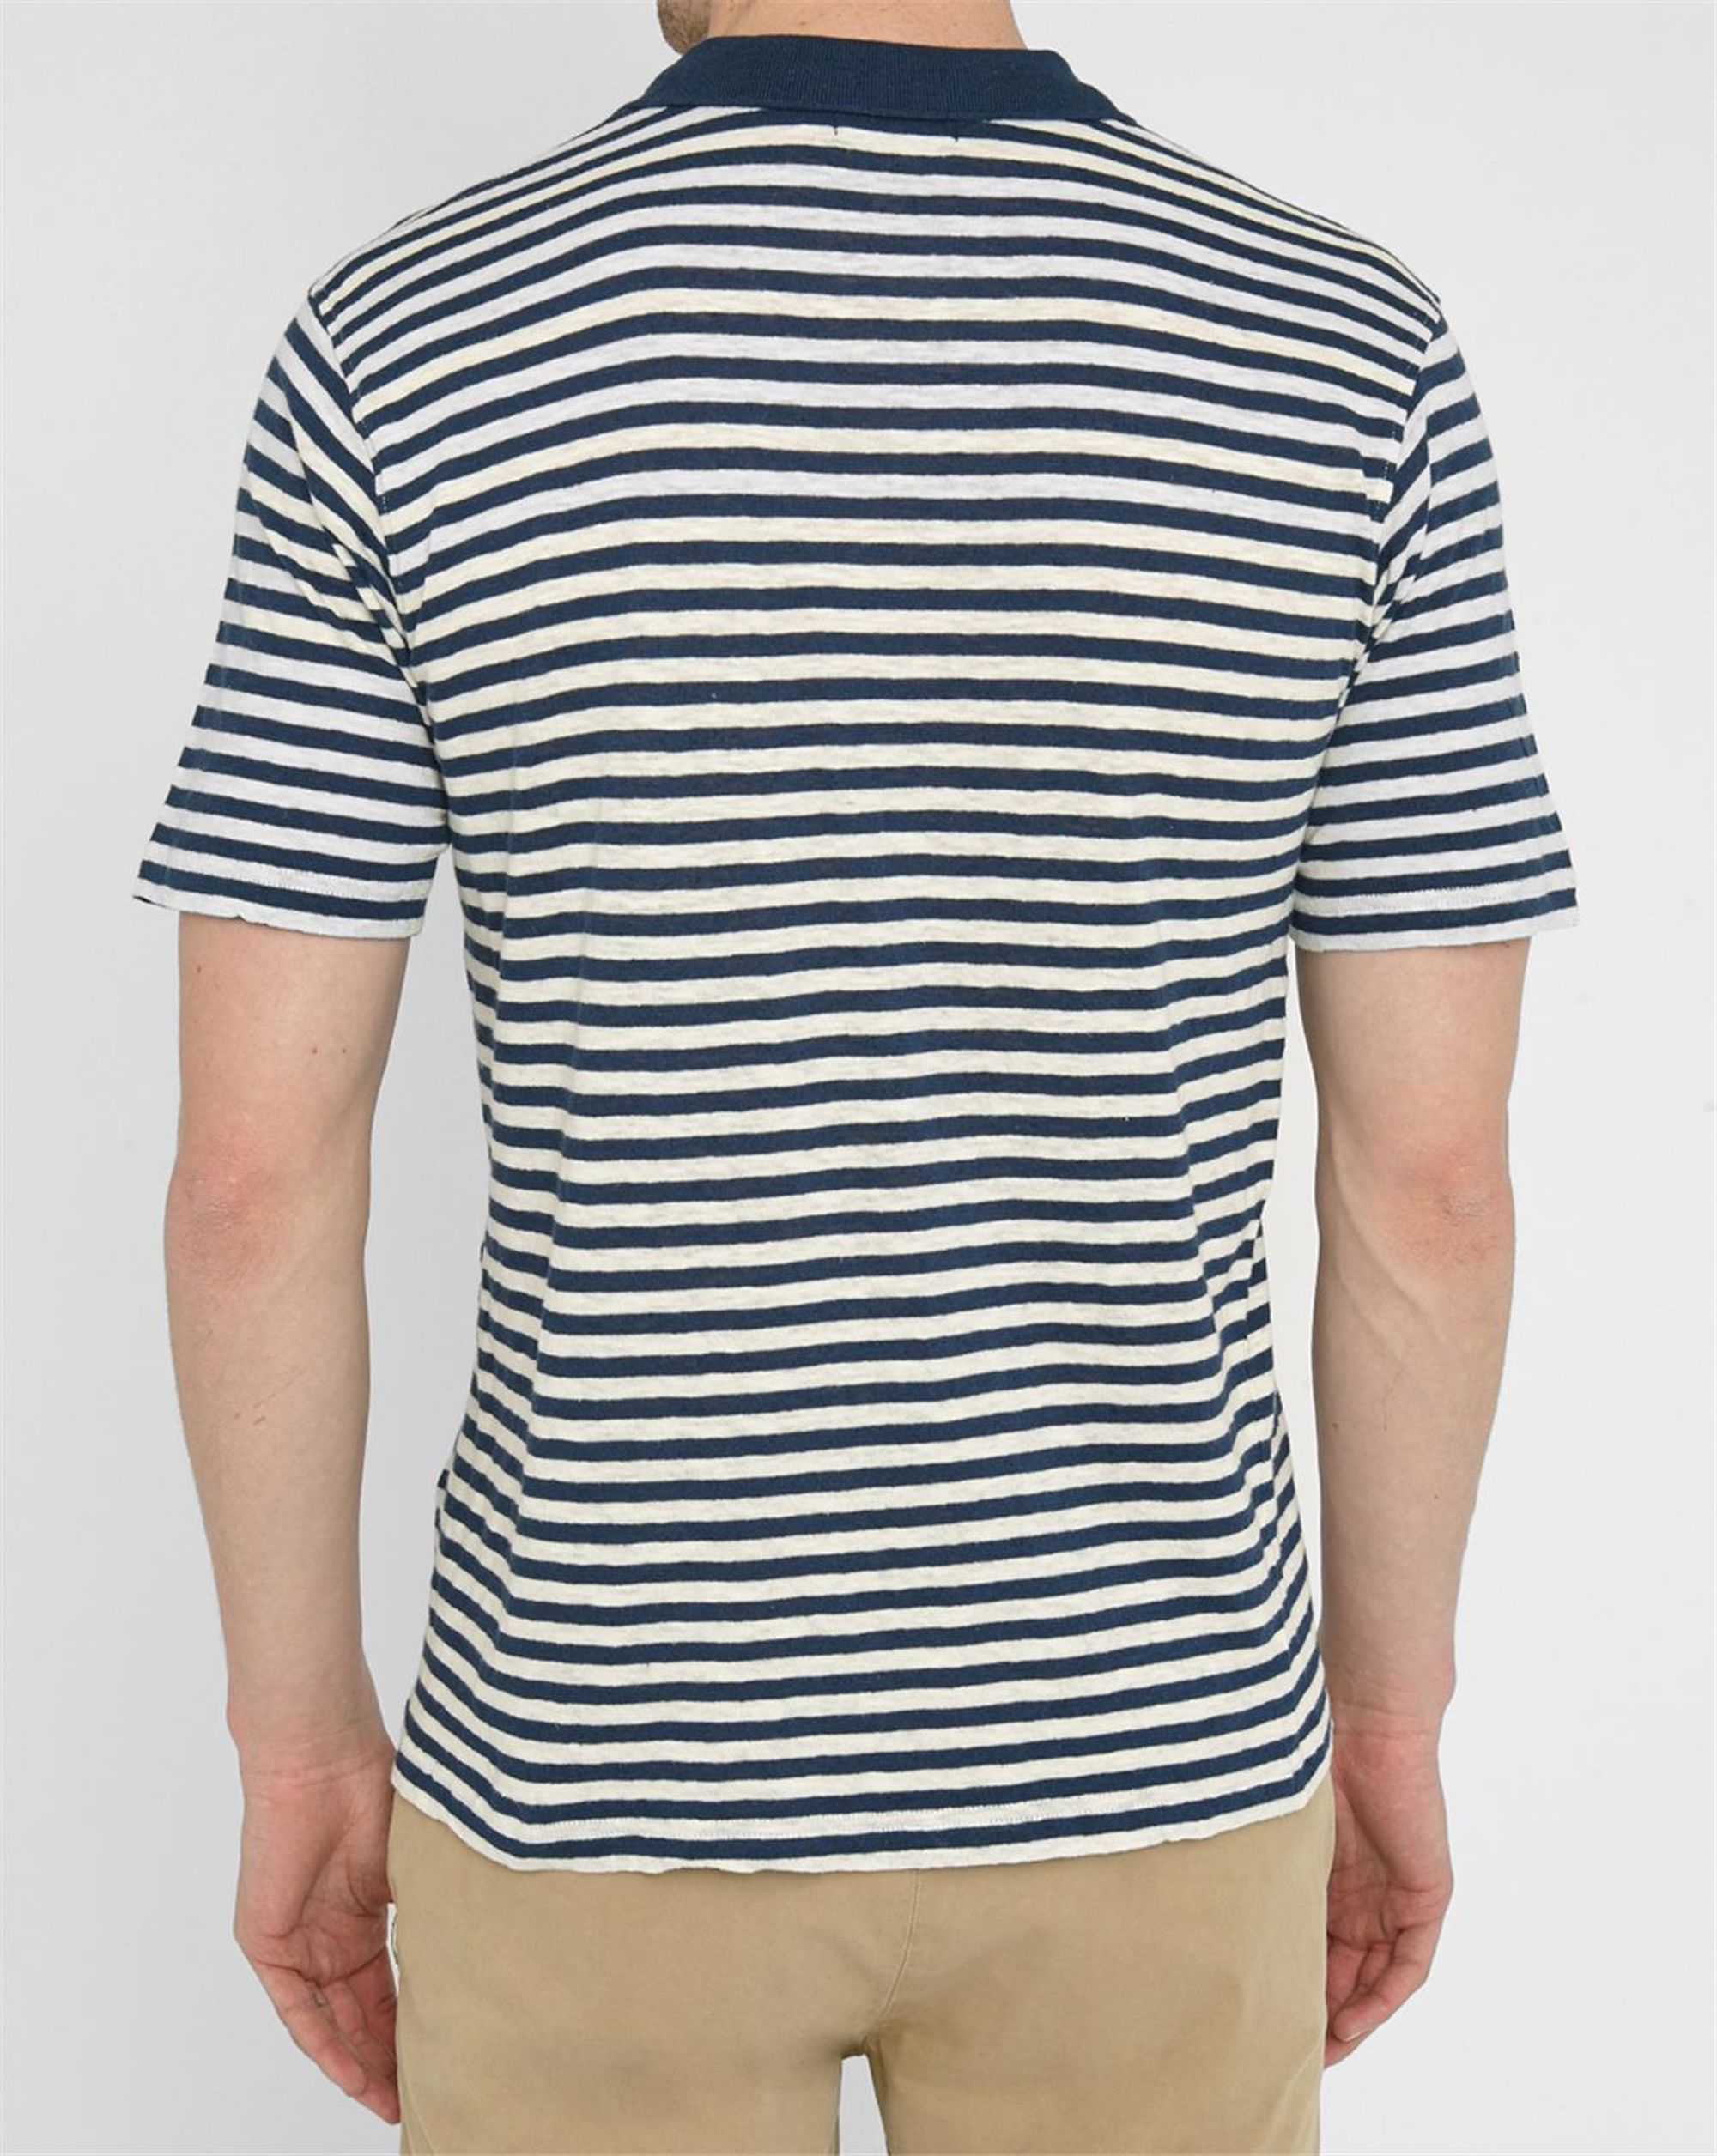 Armor Lux Navy And Ecru Cotton Linen Sailor Stripe Polo